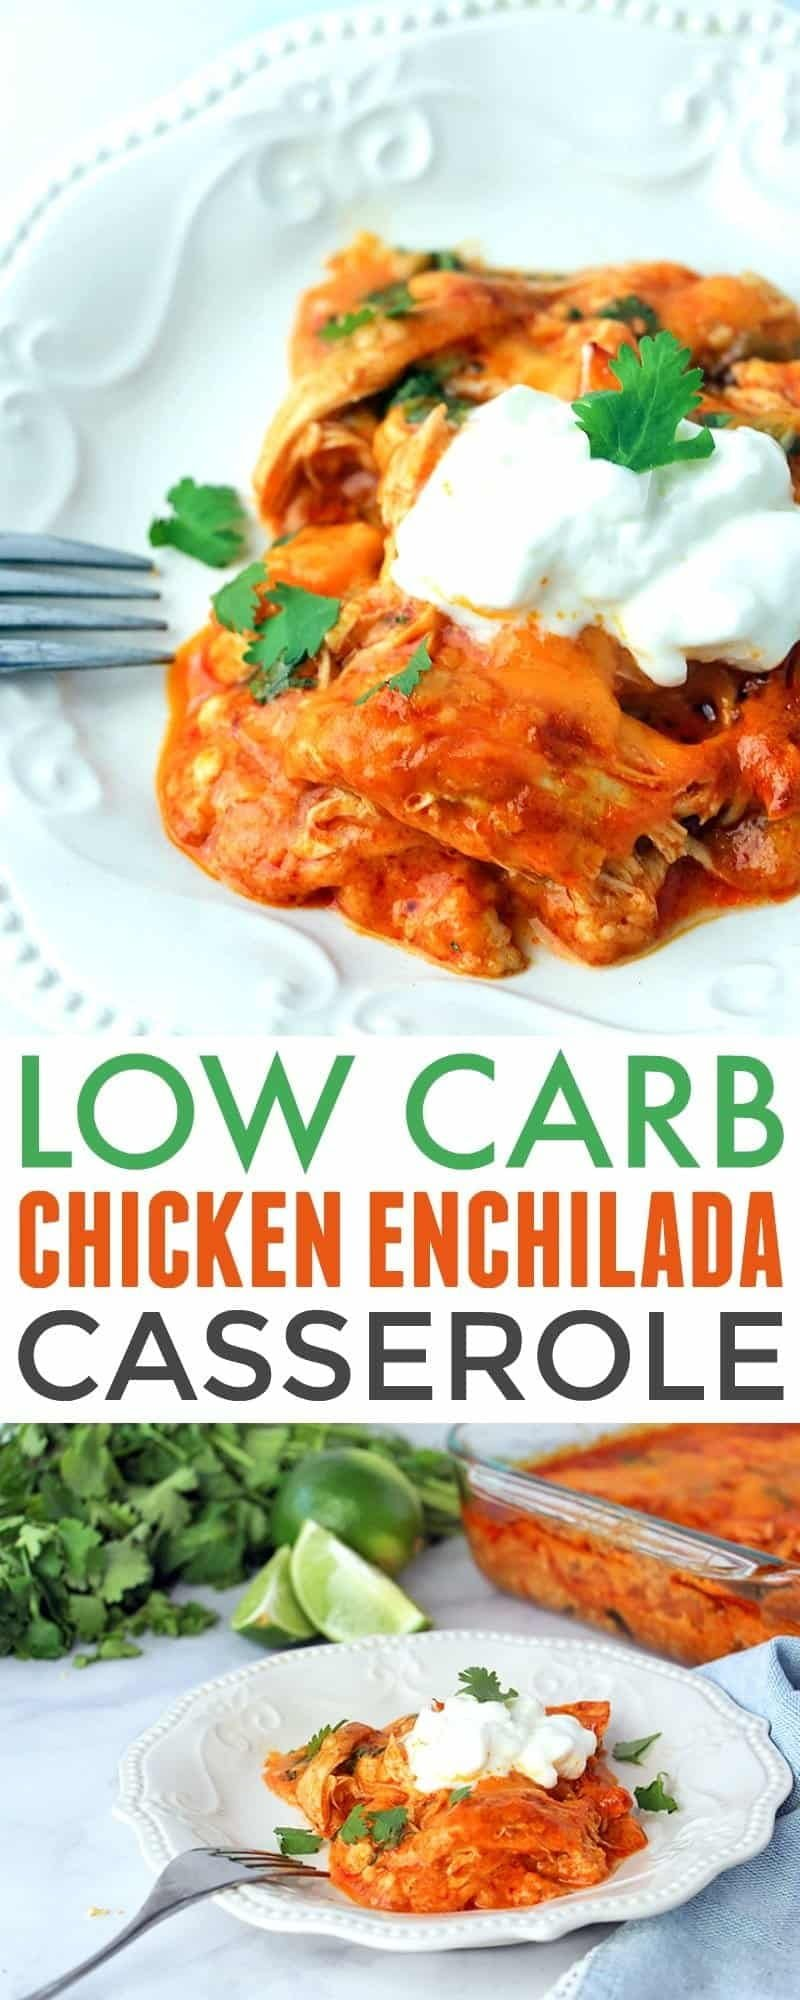 Low Carb Chicken Enchilada Casserole collage of two images